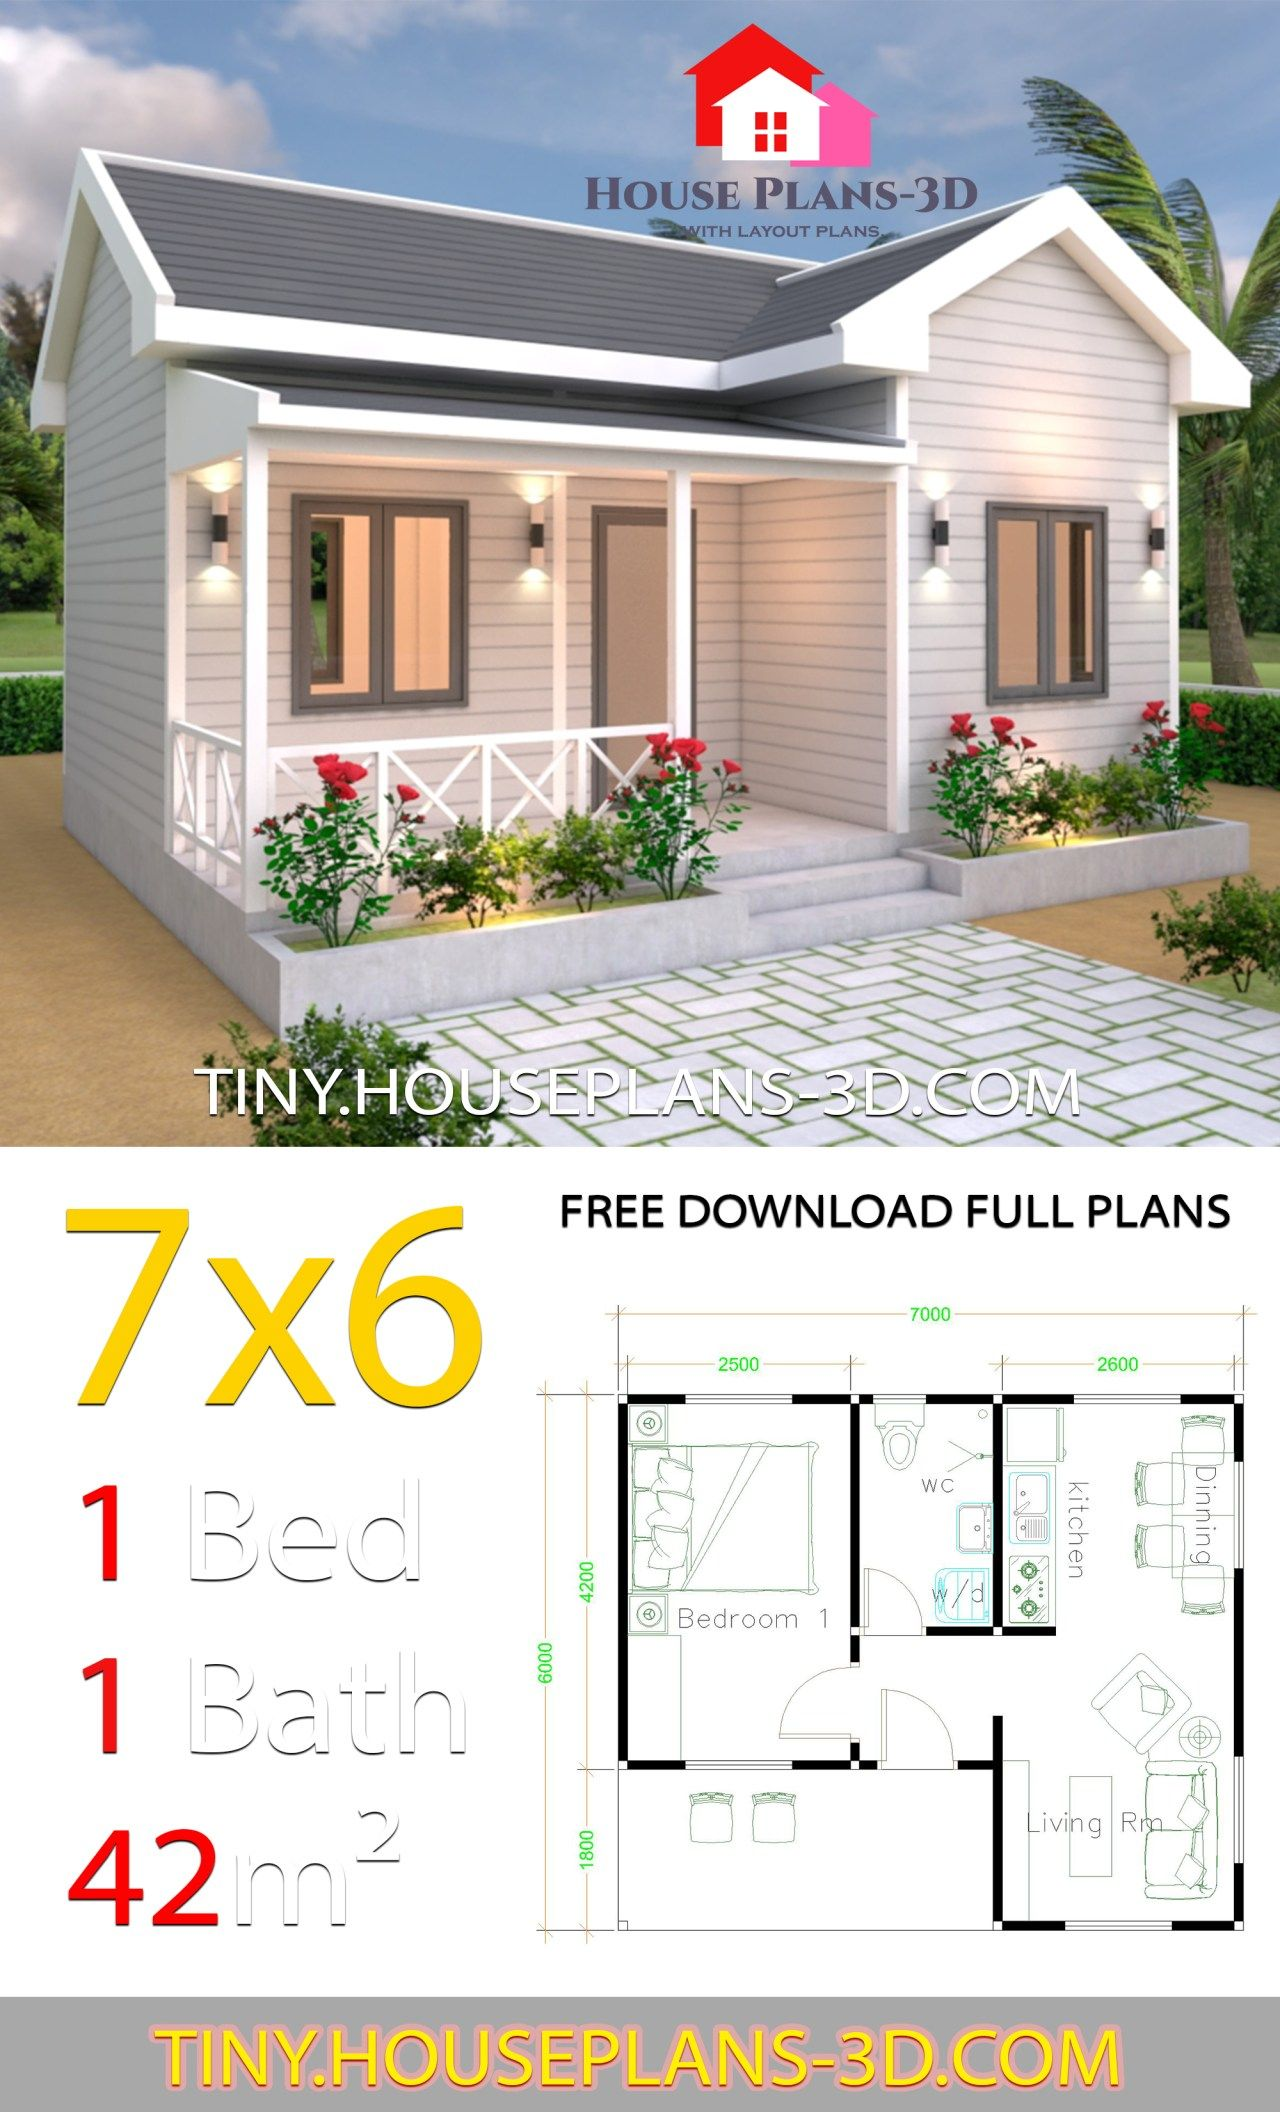 Tiny House Plans 7x6 With One Bedroom Cross Gable Roof Tiny House Plans Casas Prefabricadas Economicas Casas Sencillas Bonitas